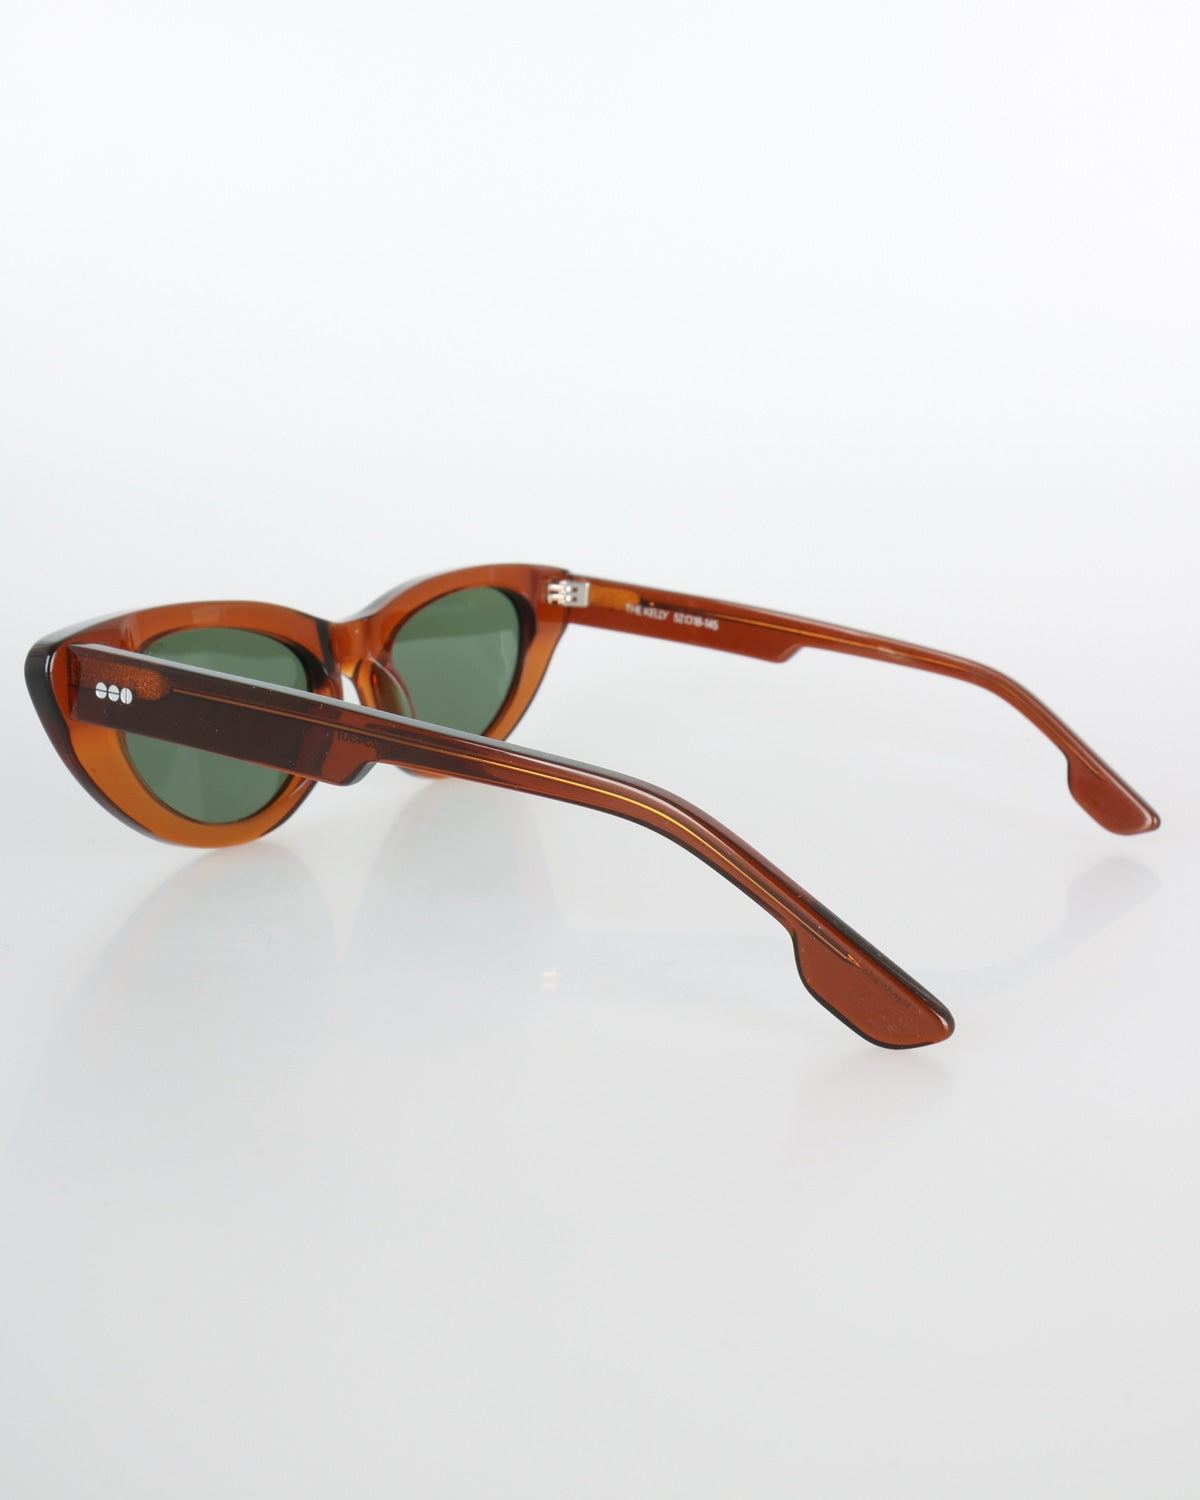 komono_kelly sunglasses_3_3